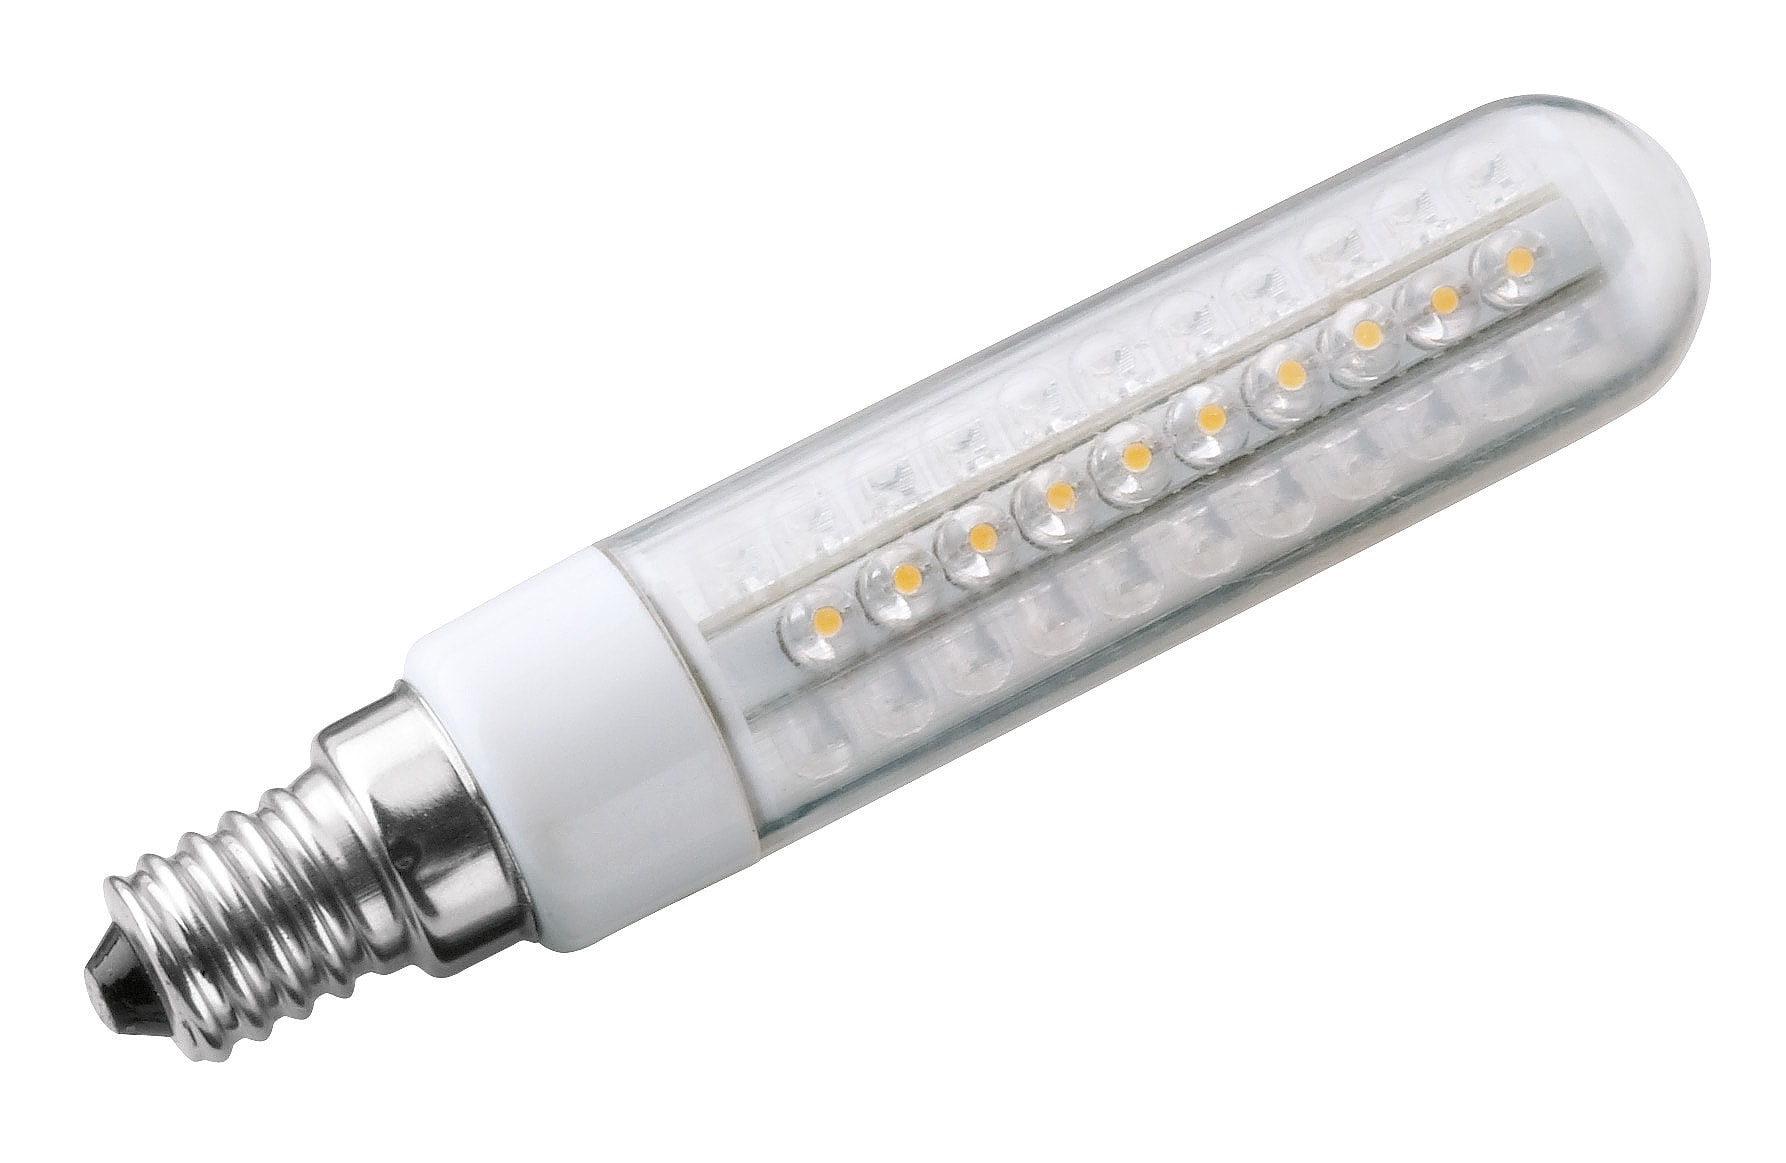 KM12293 - Led replacement bulb